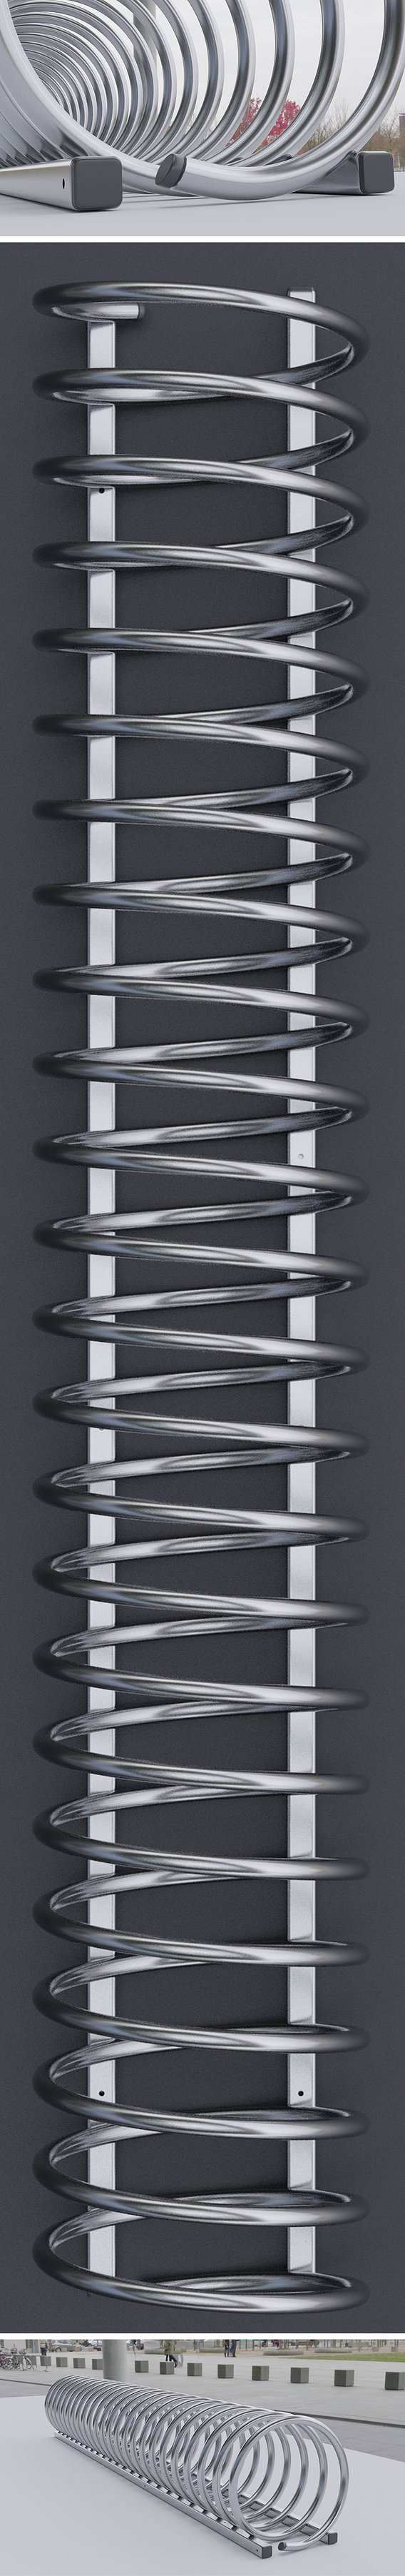 Spiral Bike Stand -2- High-Poly Version